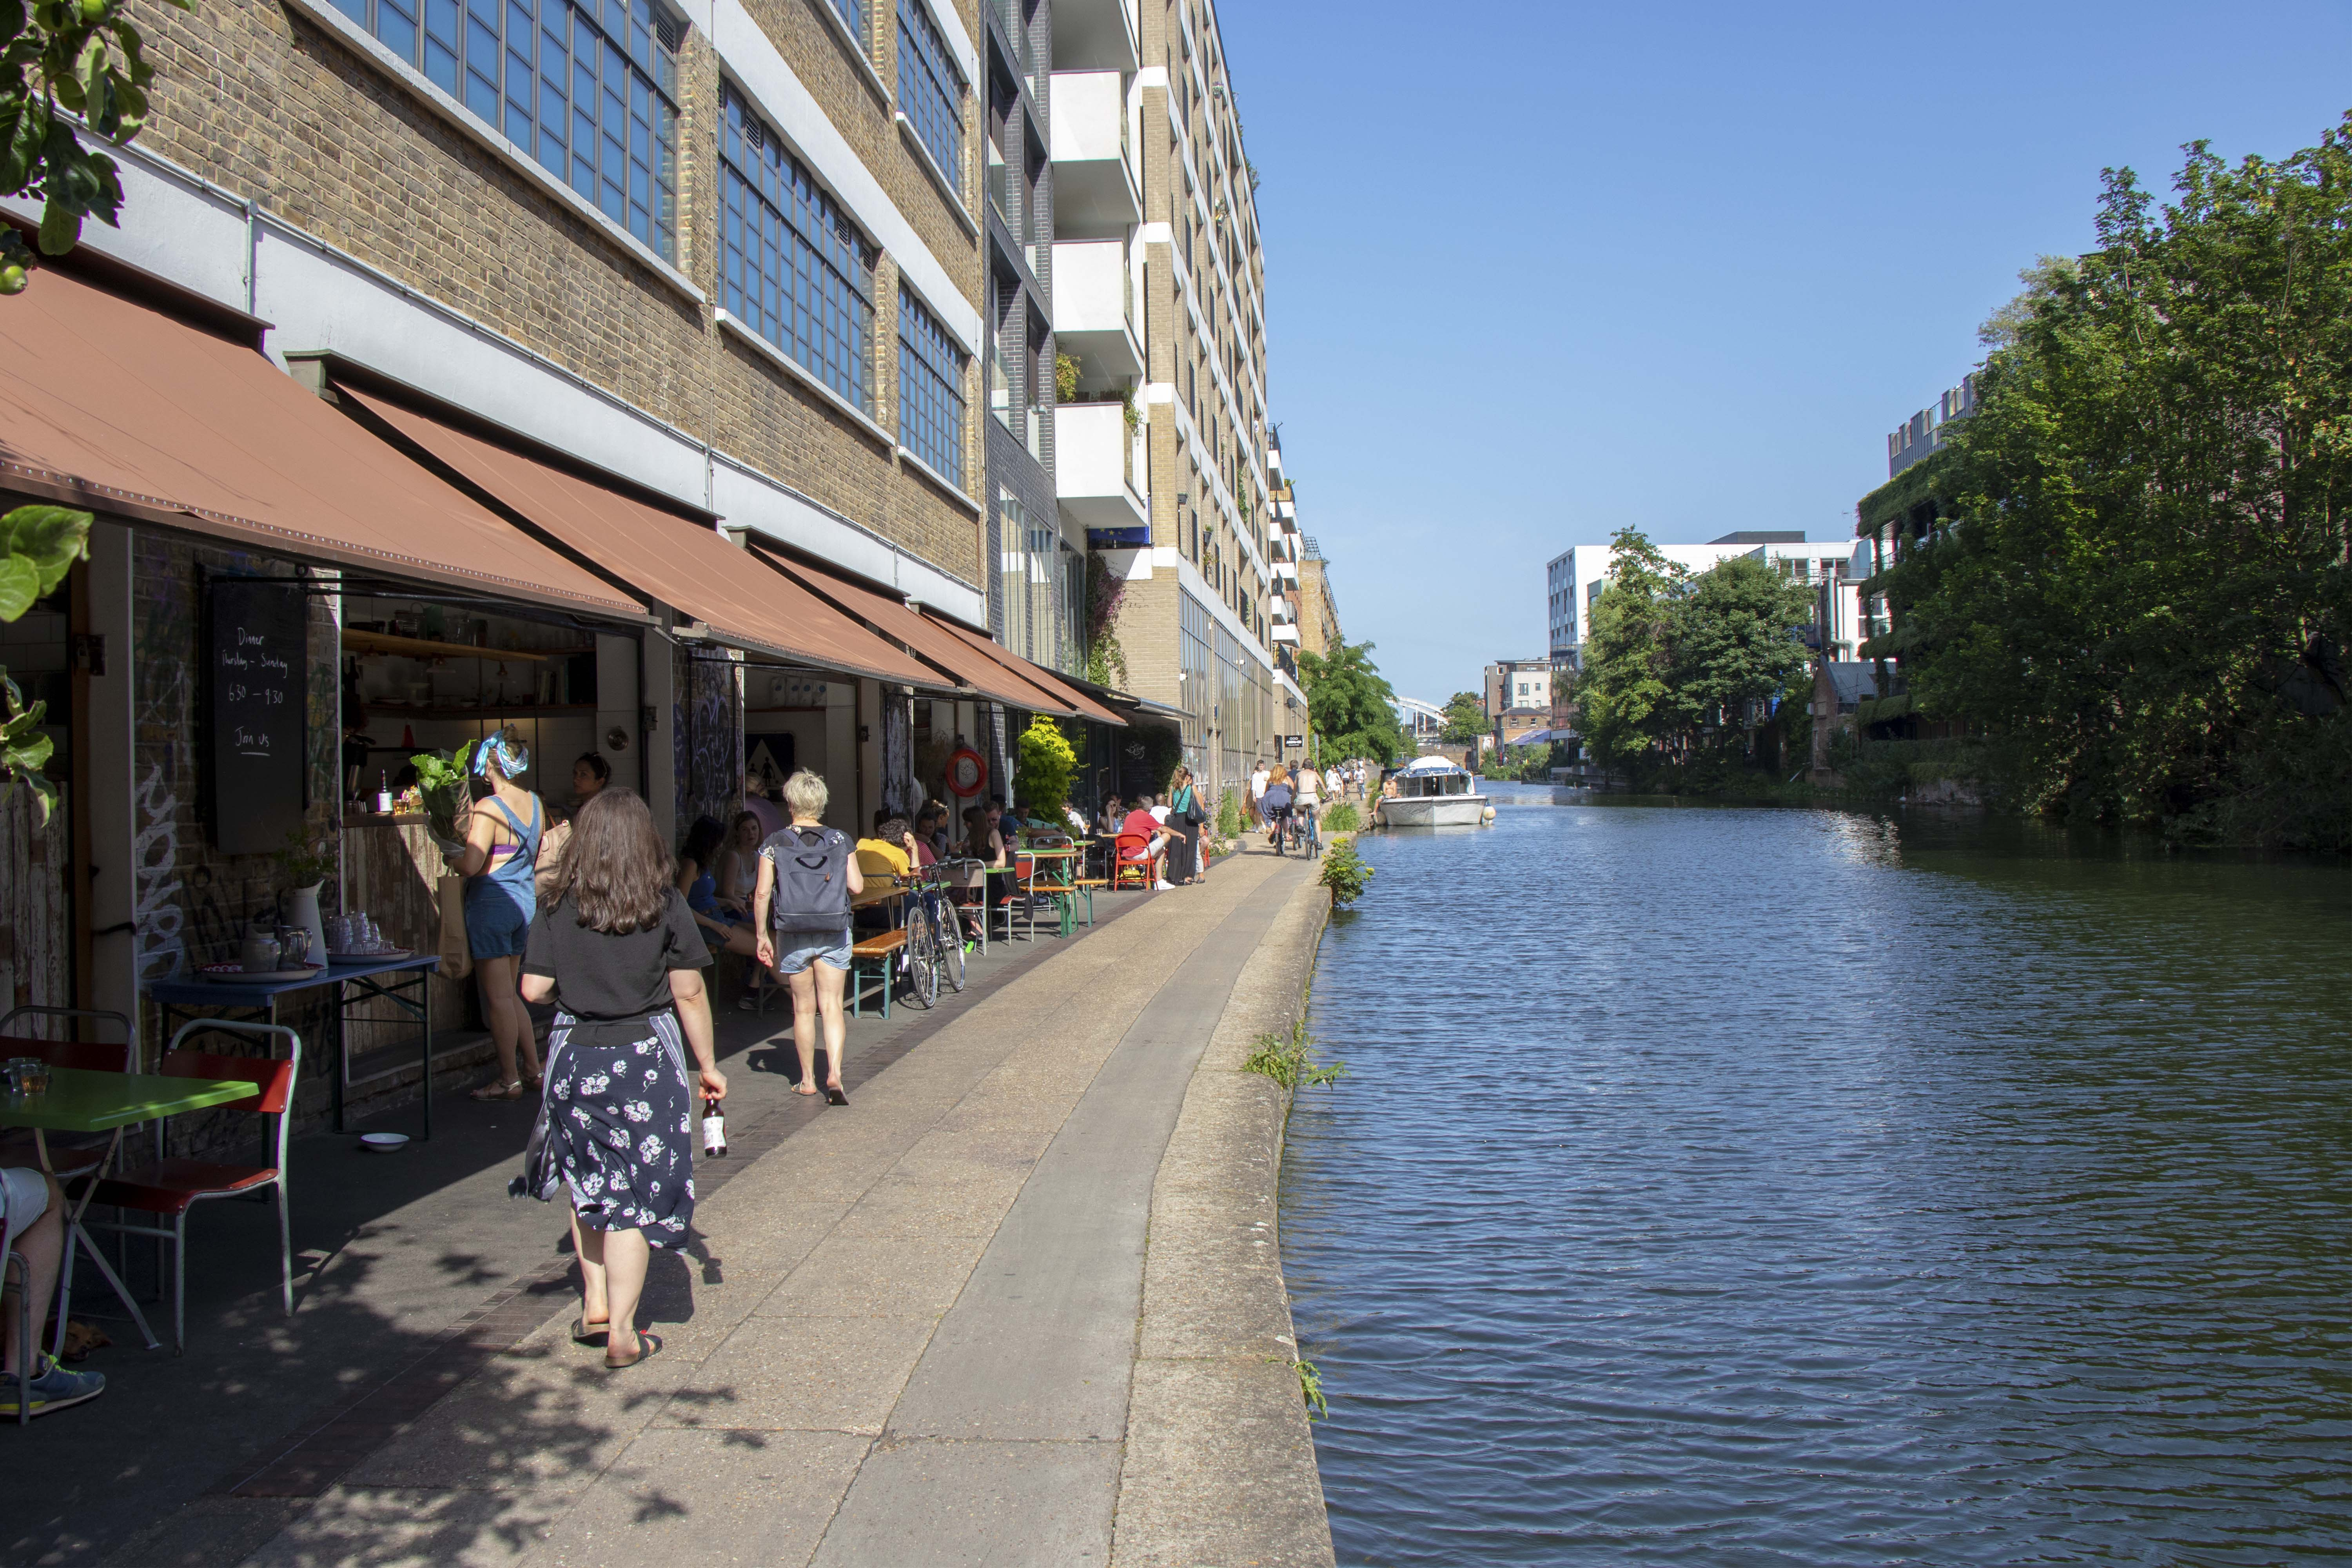 The Barge House and Towpath Cafe, Dalston by Regent's Canal